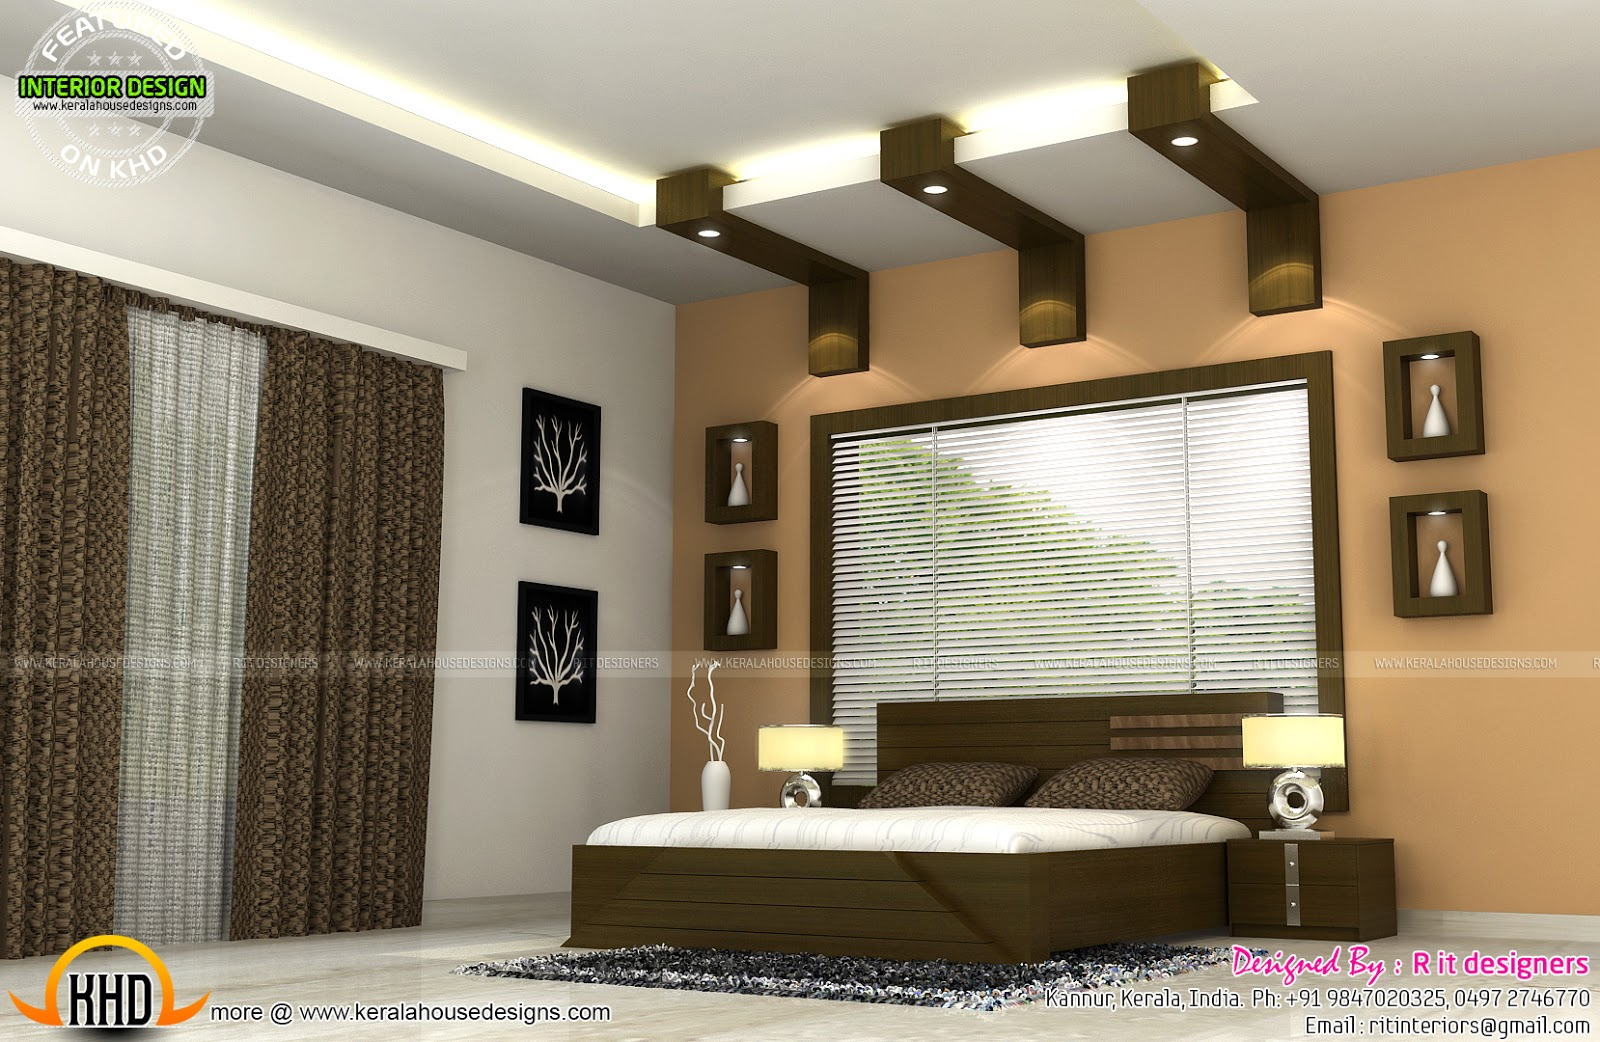 Interior Bed Room Design Interiors Of Bedrooms And Kitchen Kerala Home Design And